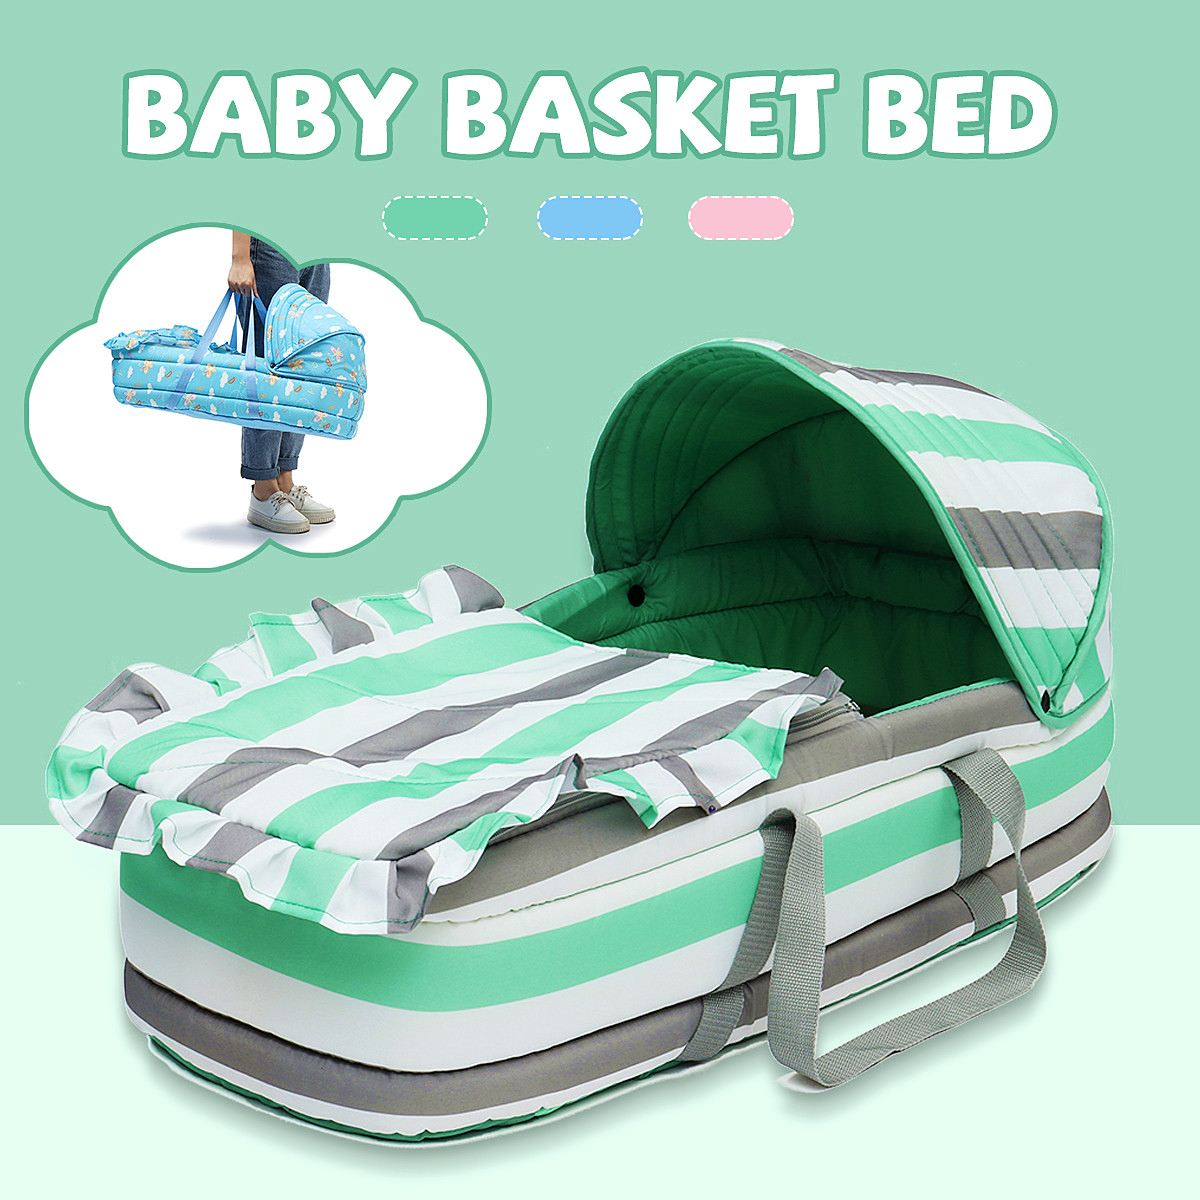 Newborn Bassinet Best Portable Baby Bed Baby Bassinet Bed For 8month Baby Basket